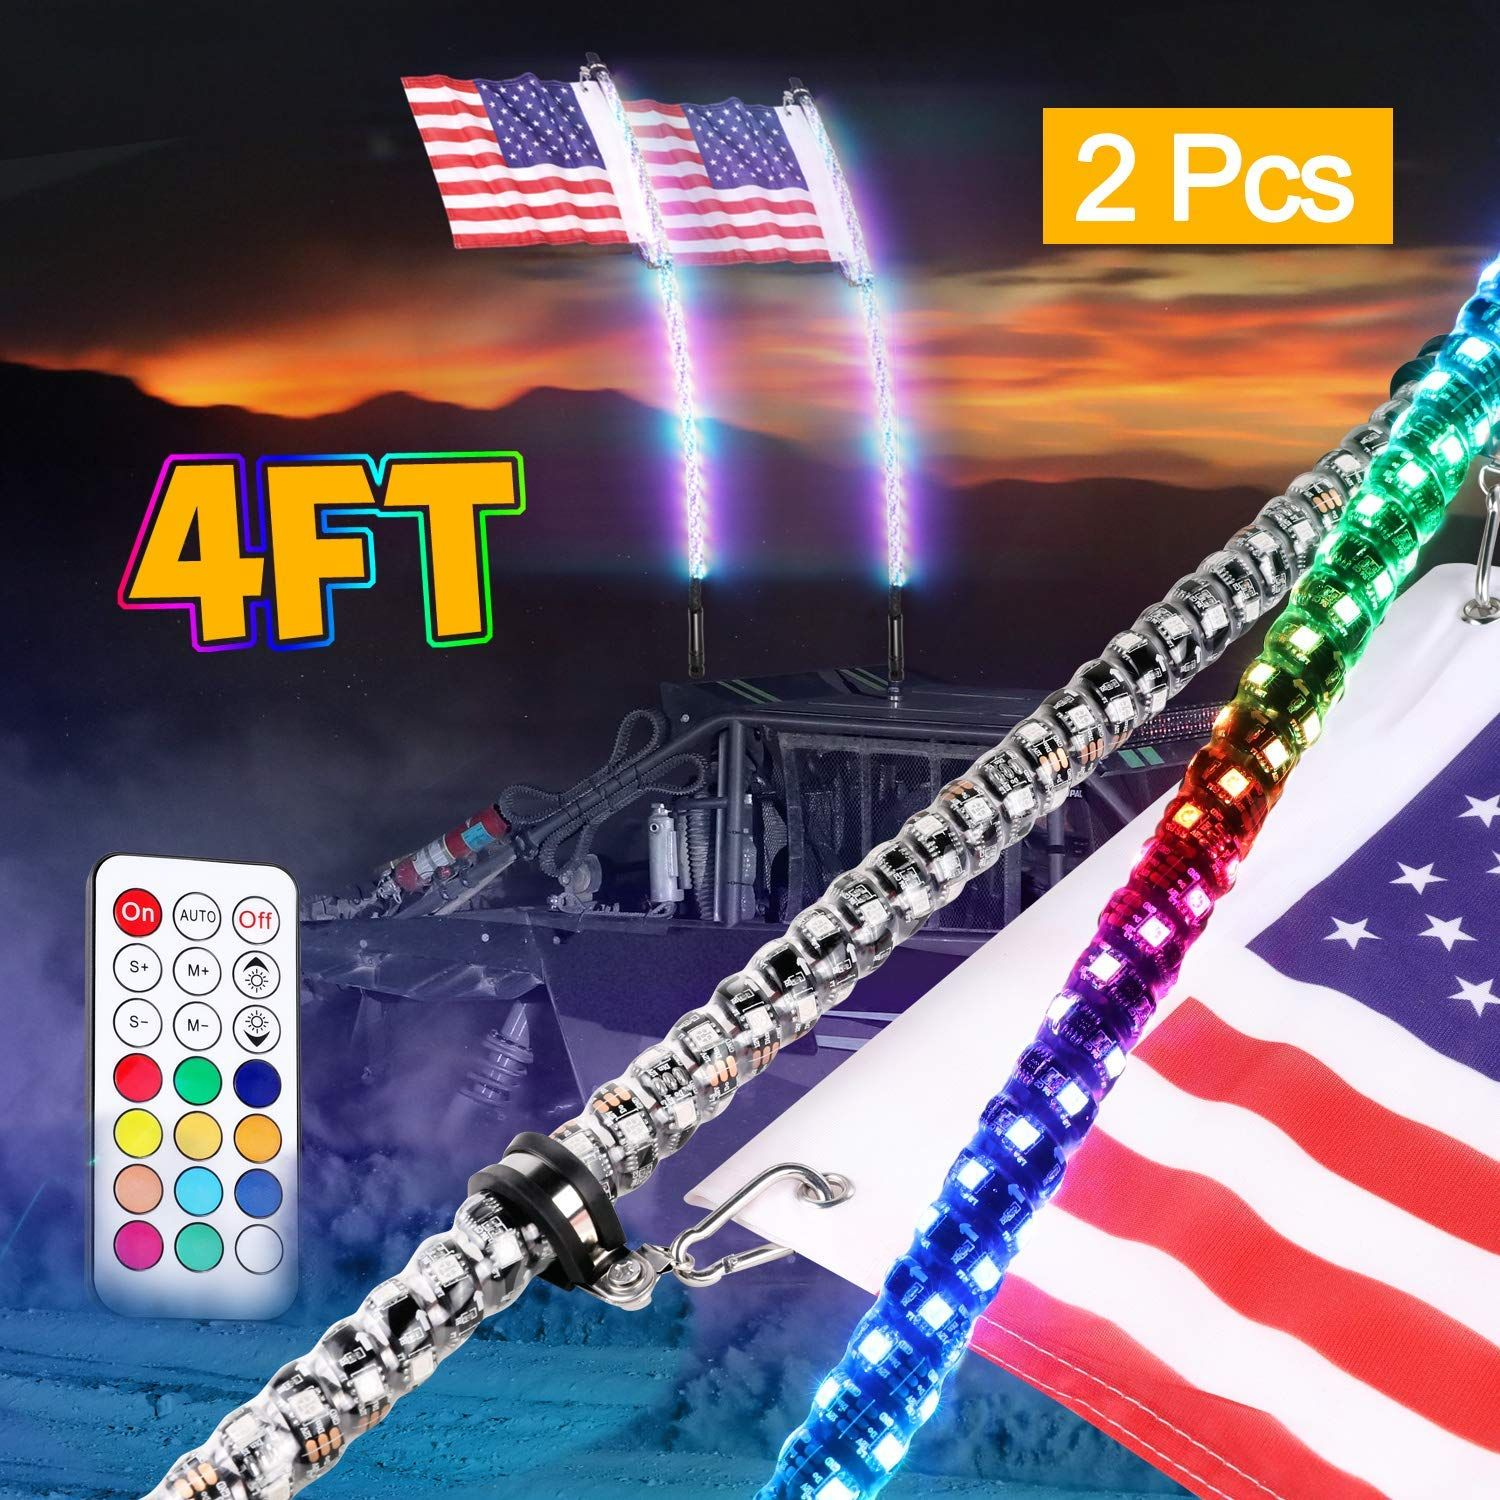 Wayup 2pcs 4ft Led Whip Lights With Remote Control Spiral Lighted Whips Rgb Dancing Chasing Light Led Antenna Whips For Utv Atv Pola Polaris Rzr Rzr Jeep Truck